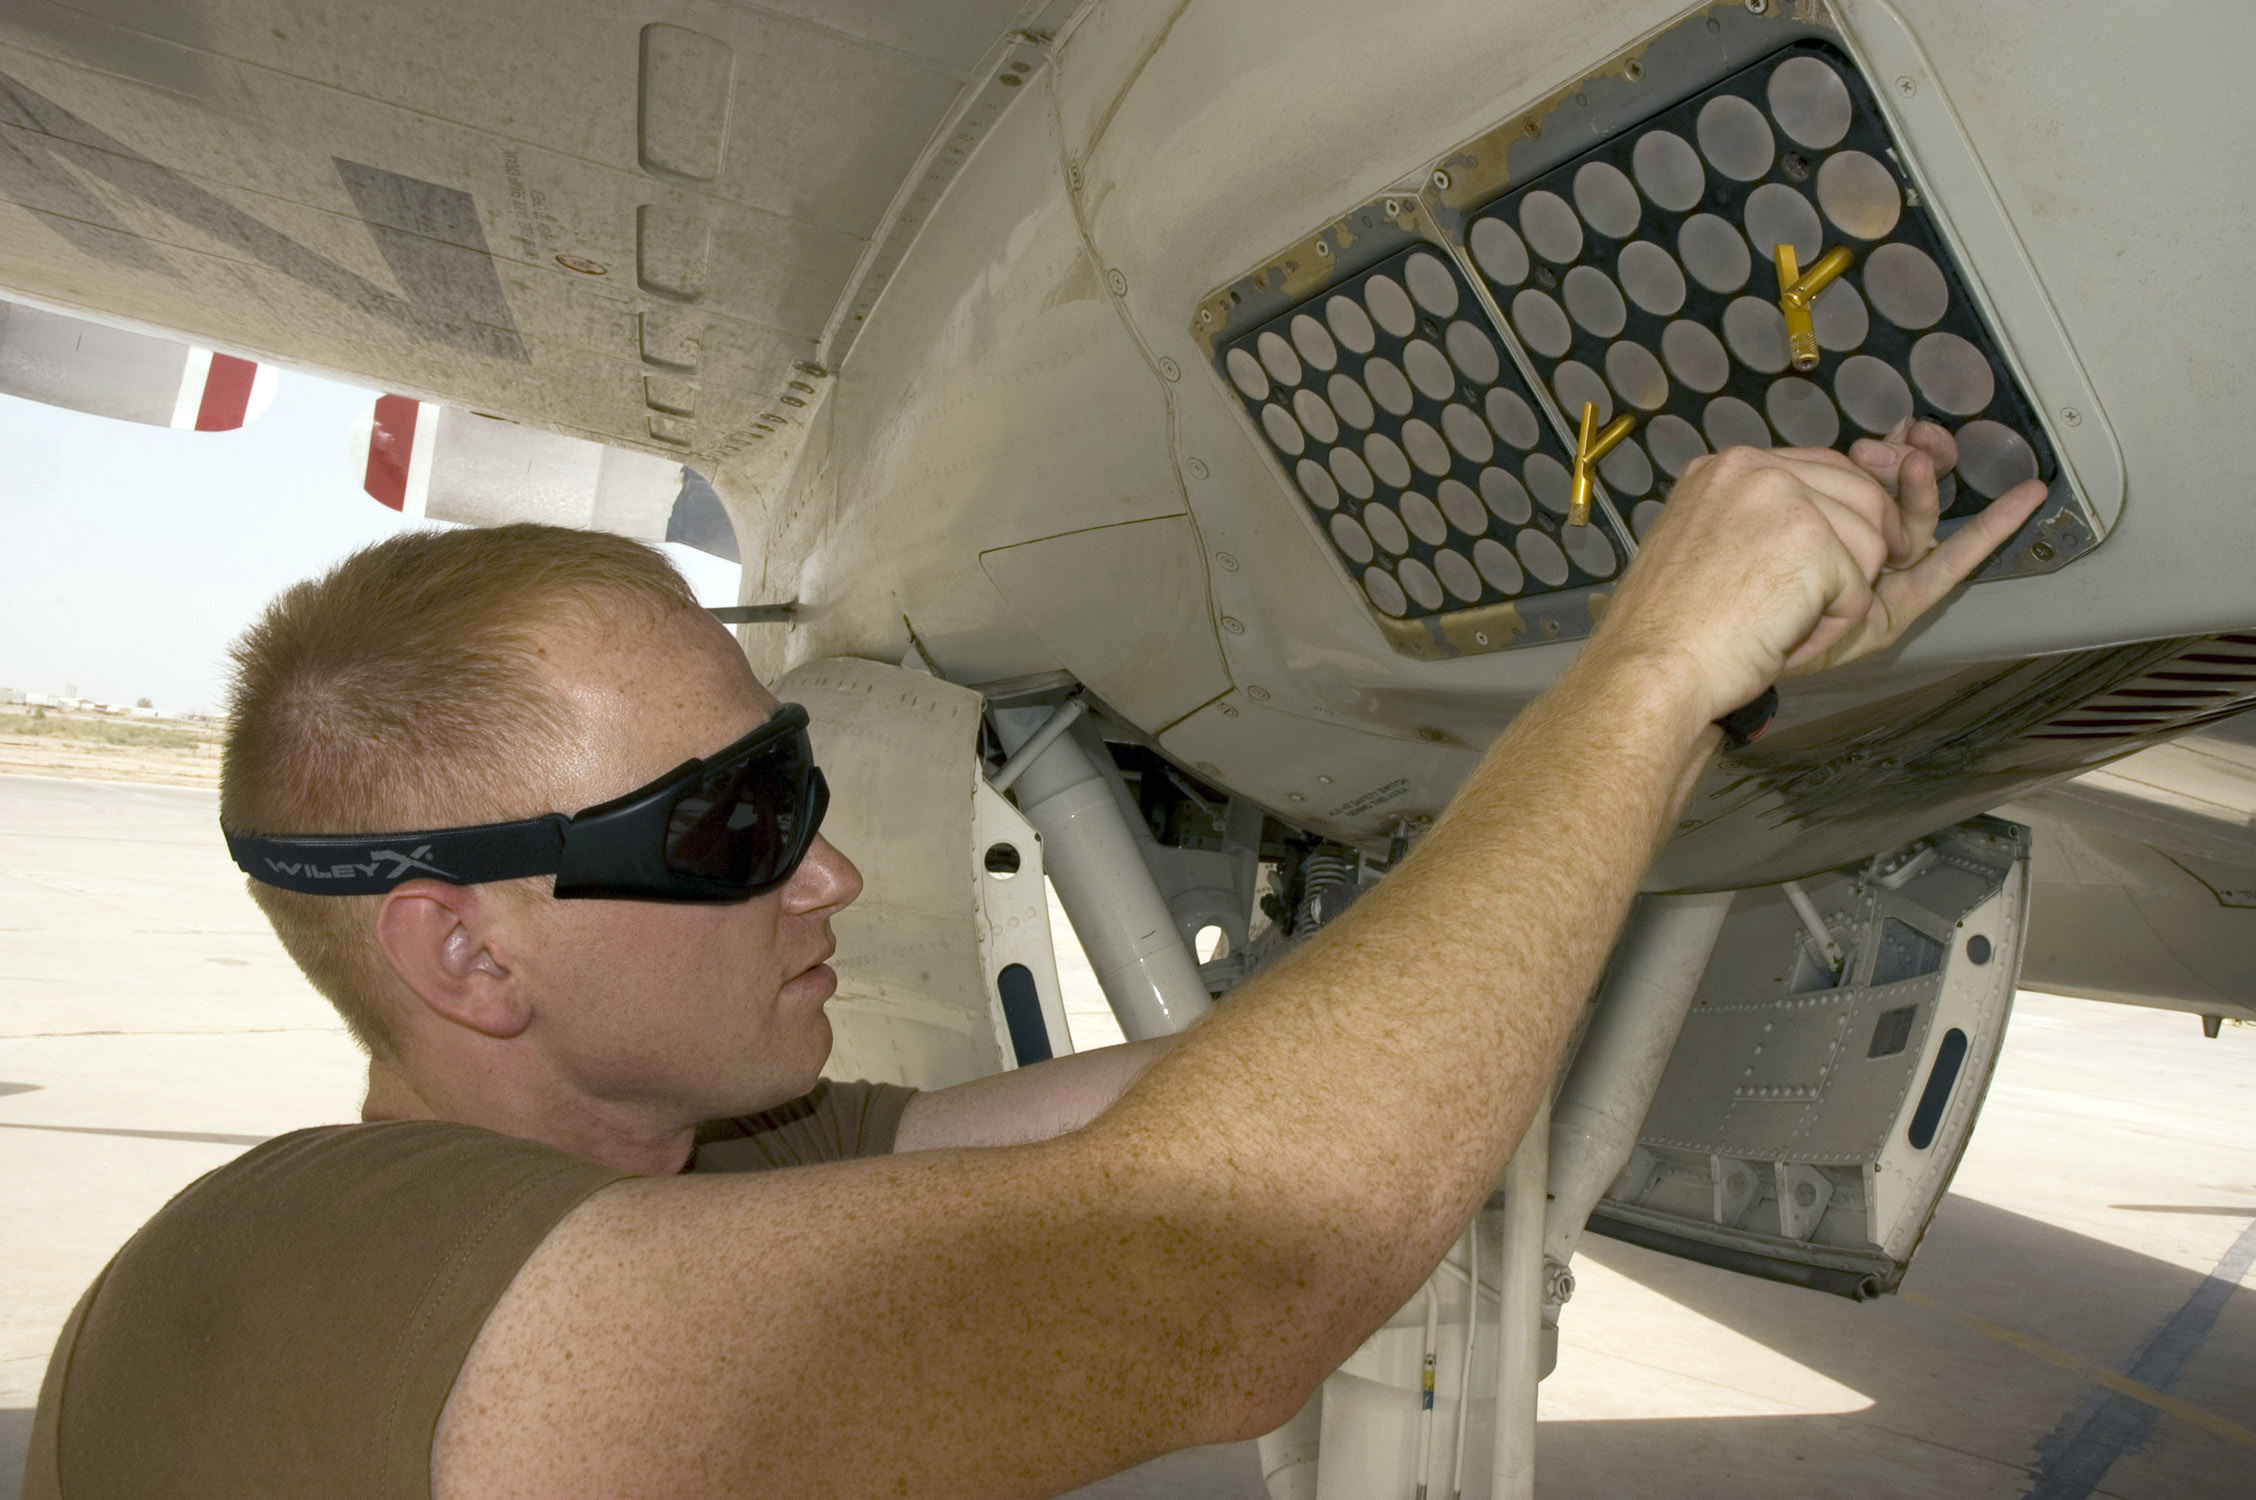 AN/ALE-47 decoy dispenser being installed aboard a USN P-3C Orion maritime patrol aircraft